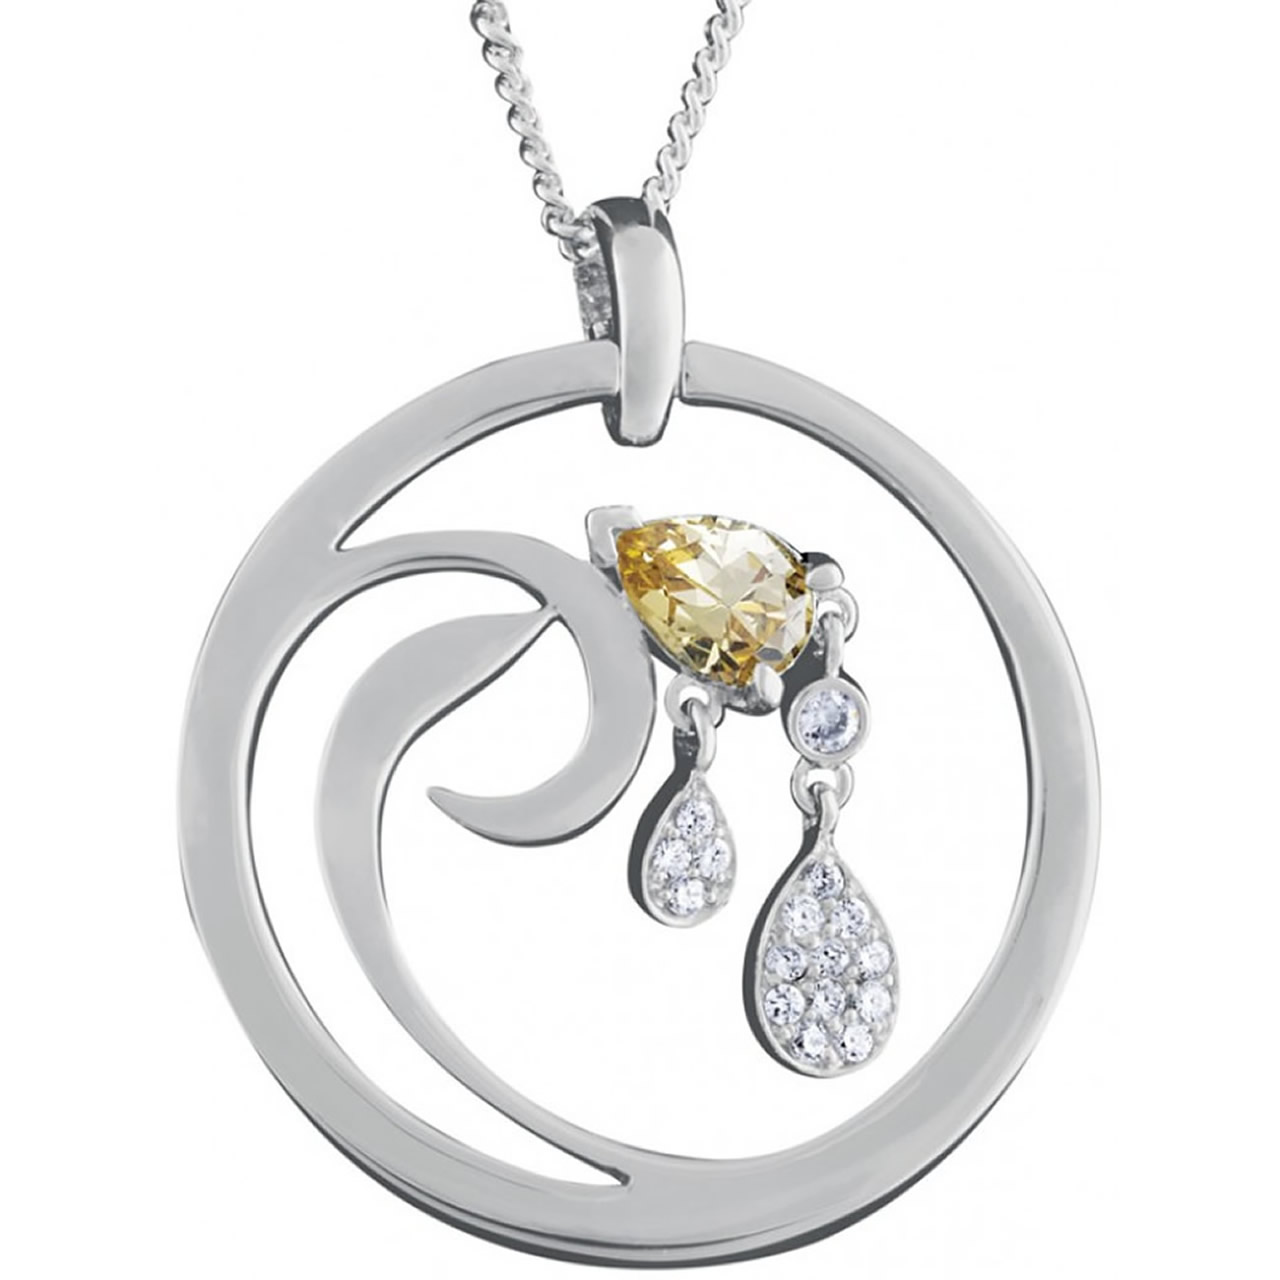 Sterling Silver Citrine And Cubic Zirconia Set Swirl Design Pendant With Chain